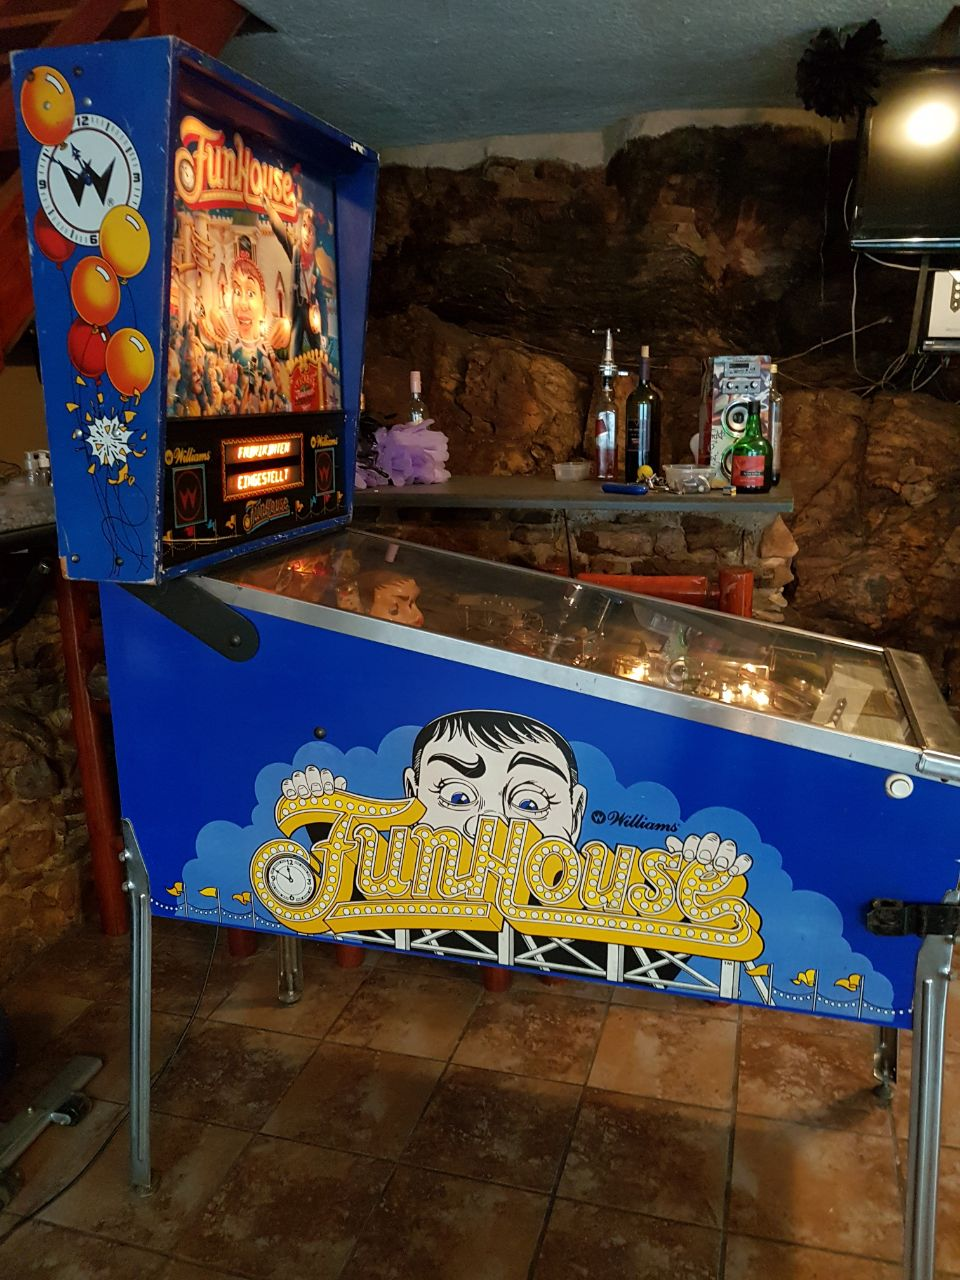 Pinball Machines - looking for all types of pinball machines